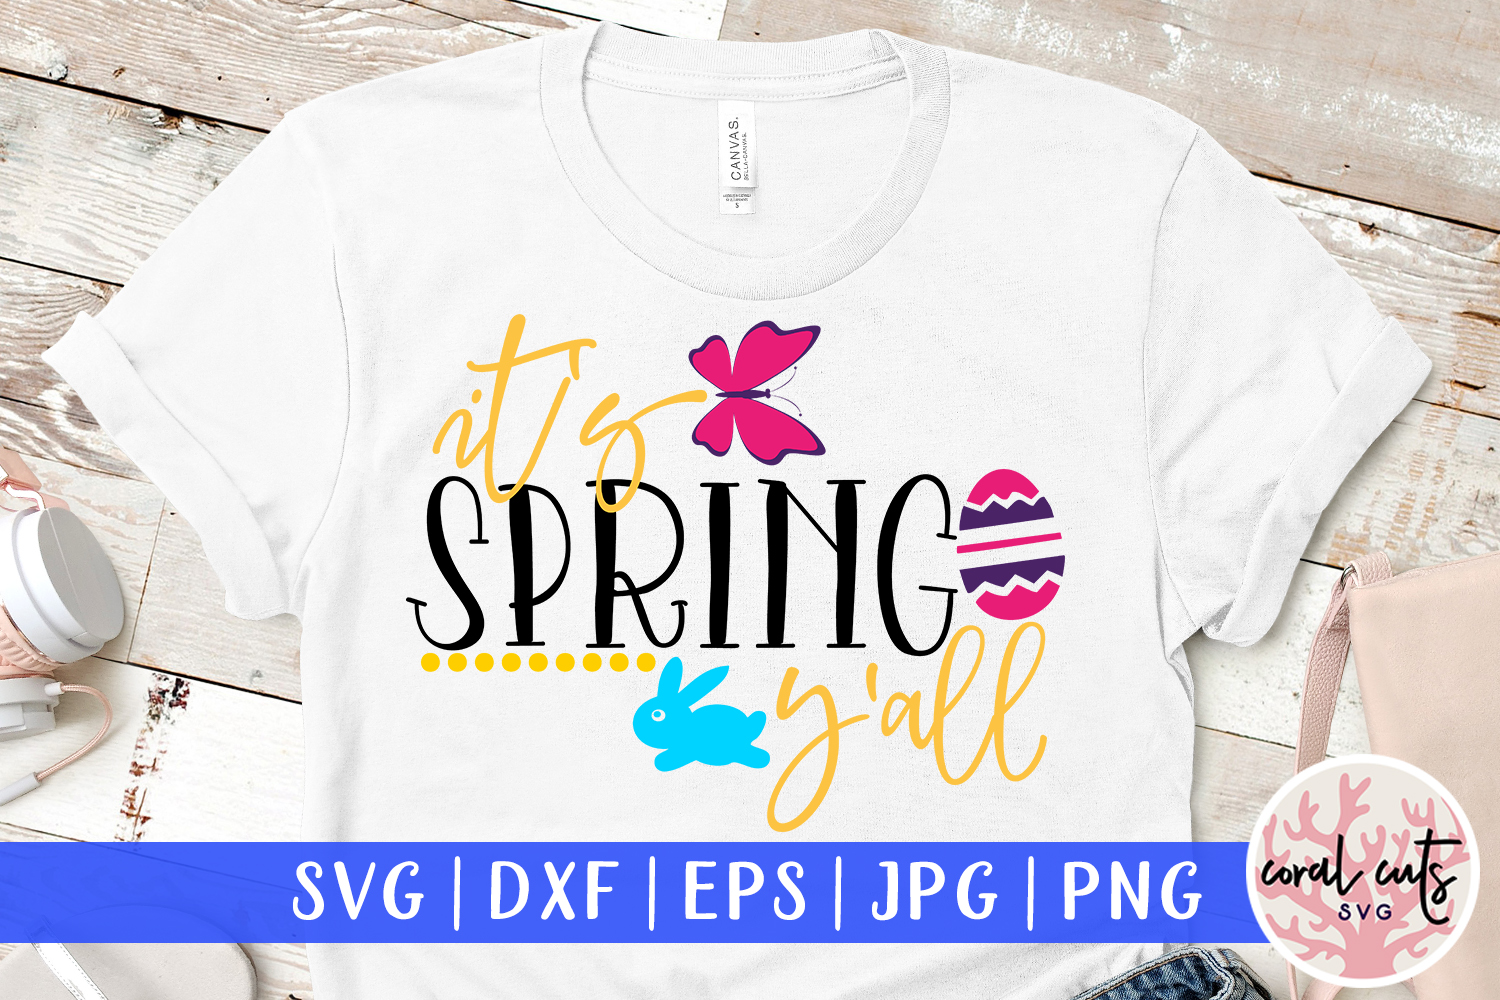 It's spring y'all - Easter SVG EPS DXF PNG Cutting File example image 1